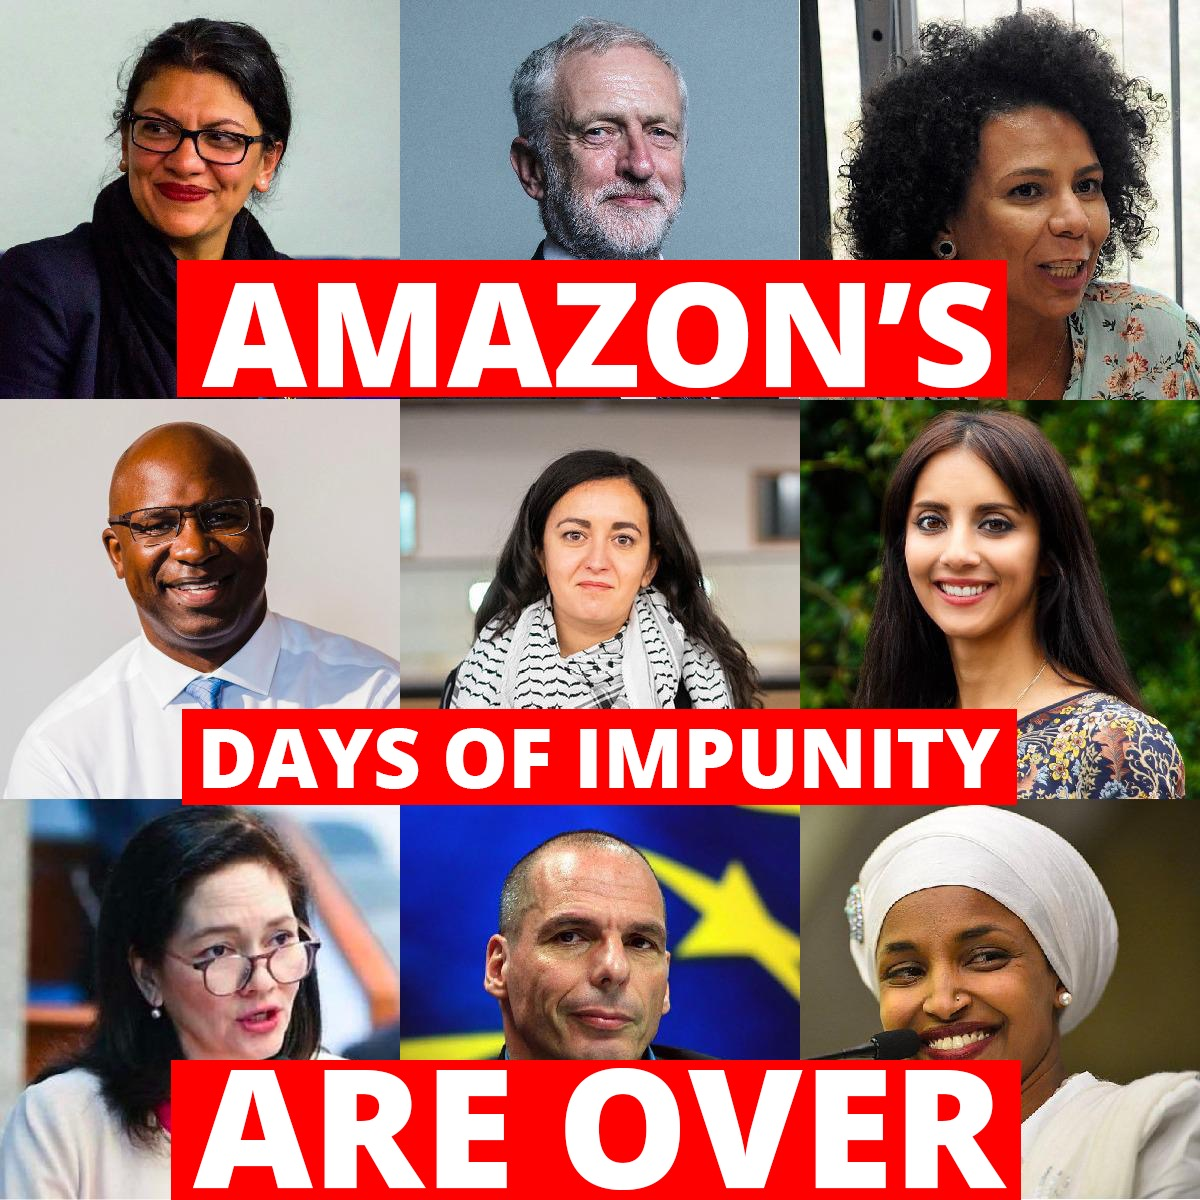 BREAKING: Parliamentarians across the planet unite to makeamazonpay.com. Last Friday, a new global movement mobilized to demand justice from @Amazon. Today, over 400 MPs across 34 countries pledge to stand with that movement in a letter to CEO Jeff Bezos. Watch now 📽️